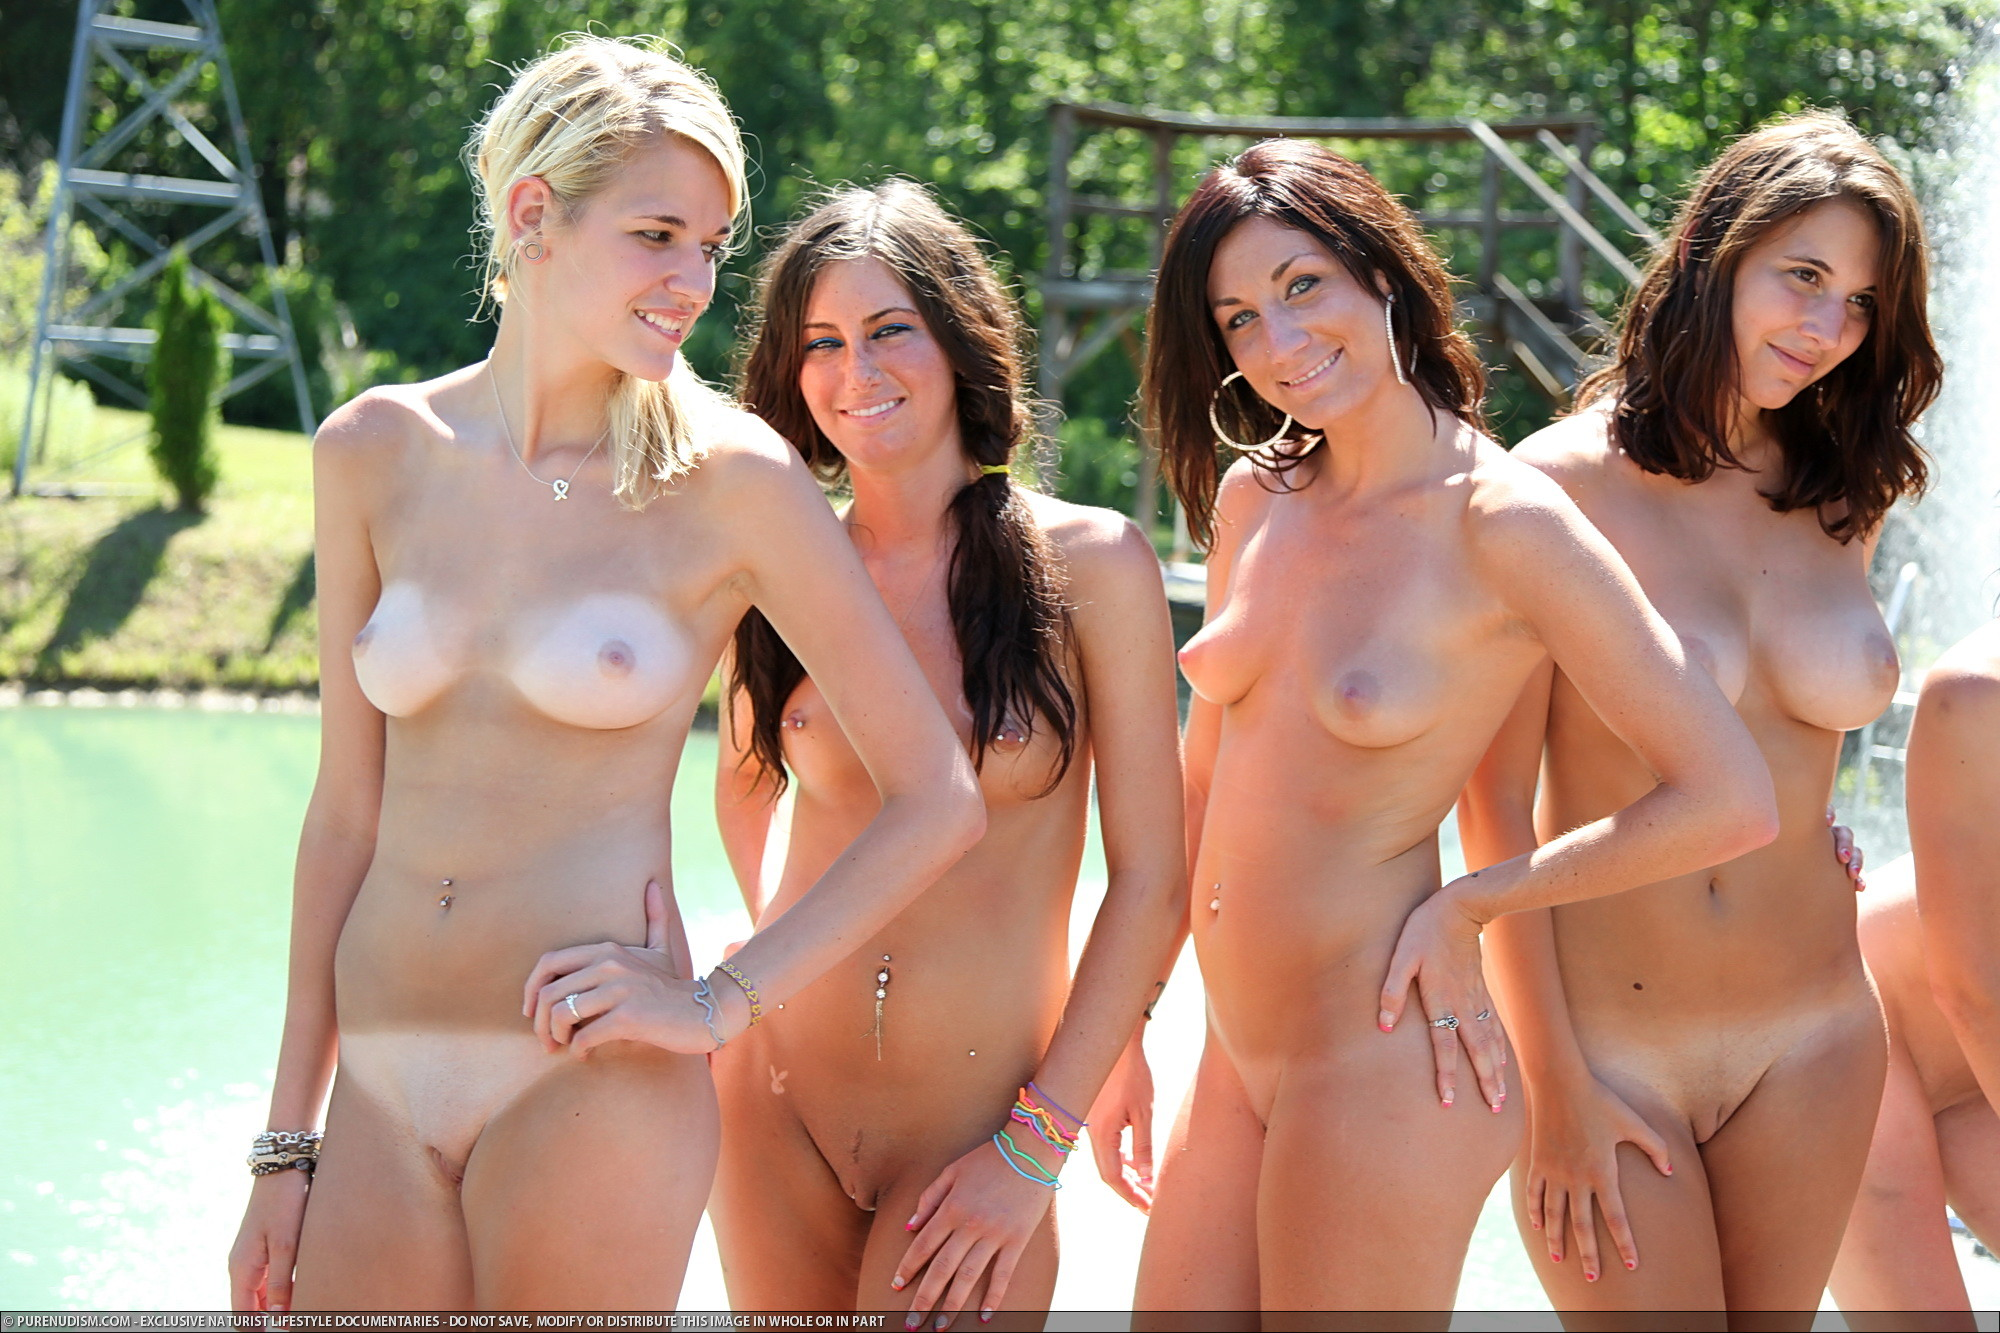 Naked college girls on webshots - College ...